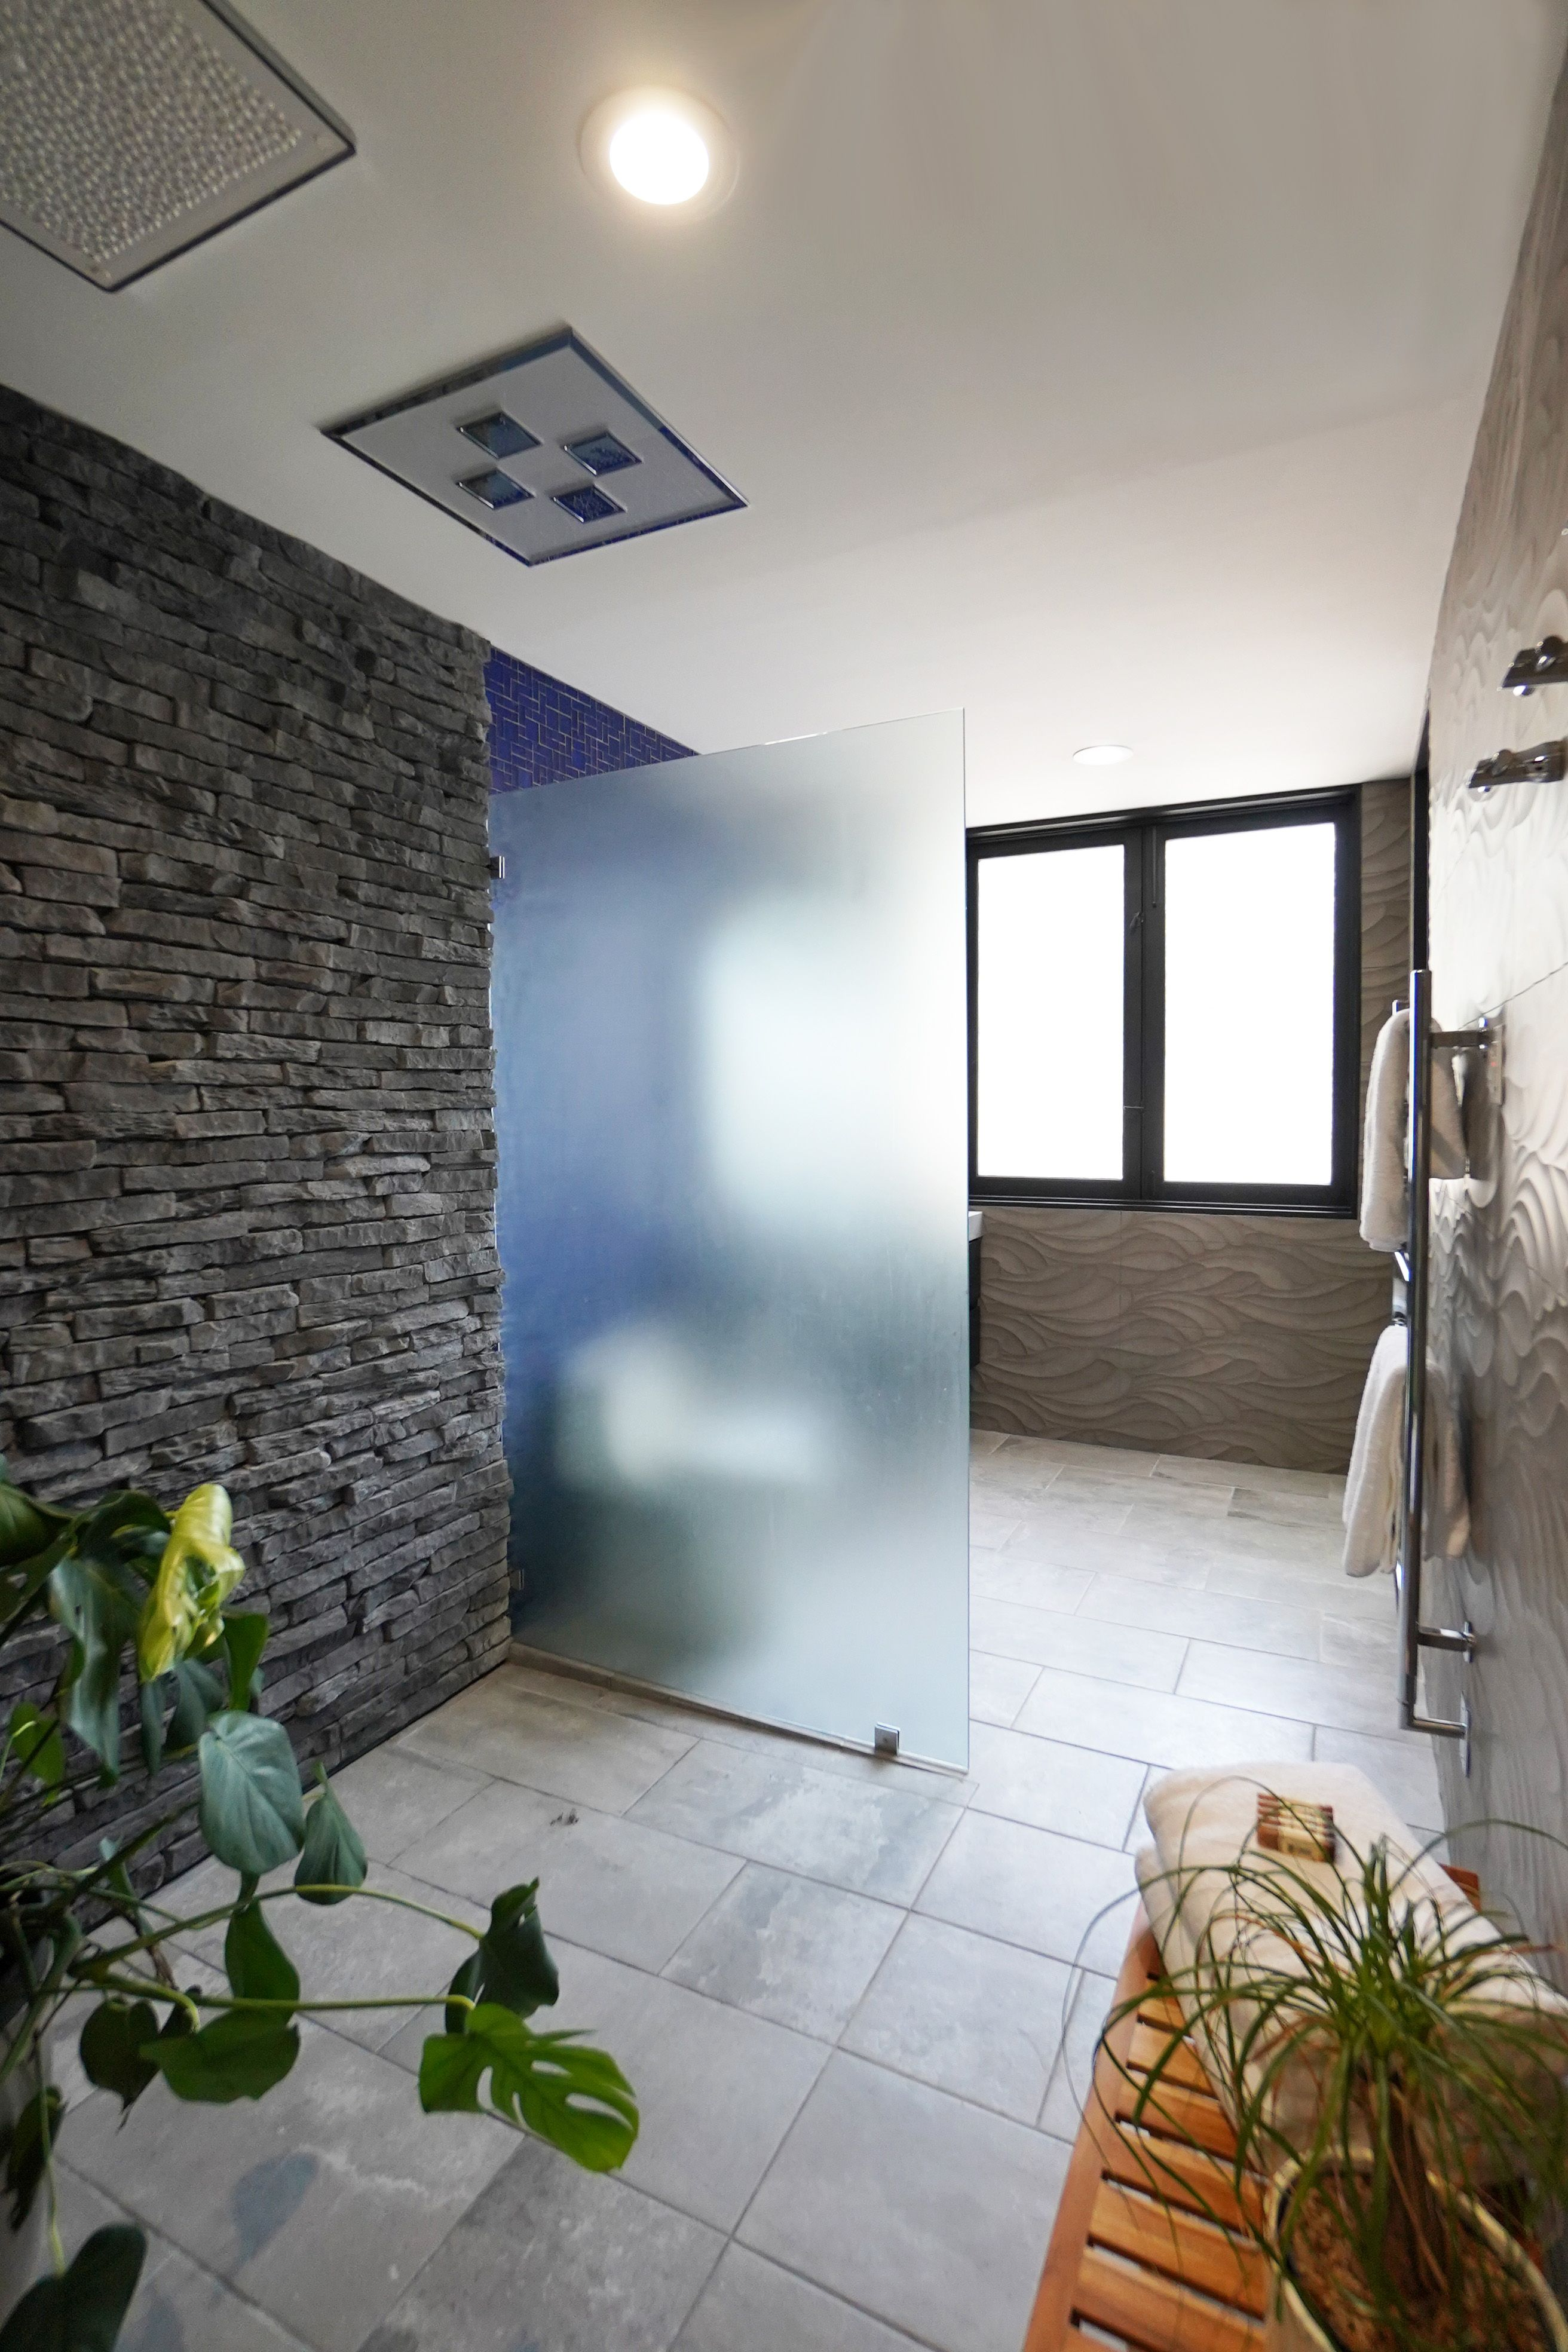 This pool house bathroom has large format architectural